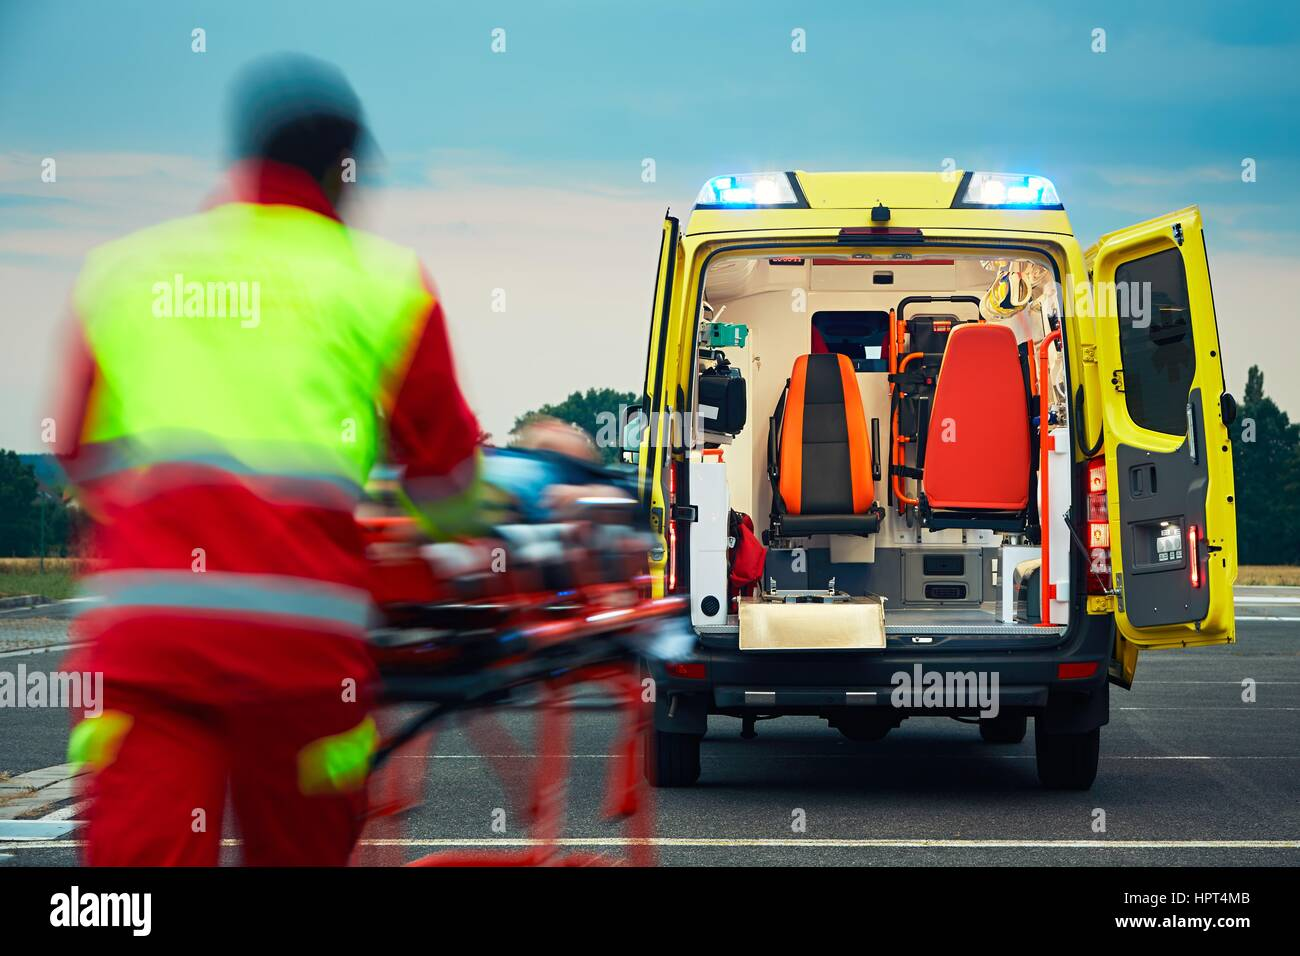 Emergency medical service. Paramedic is pulling stretcher with patient to the ambulance car. - Stock Image